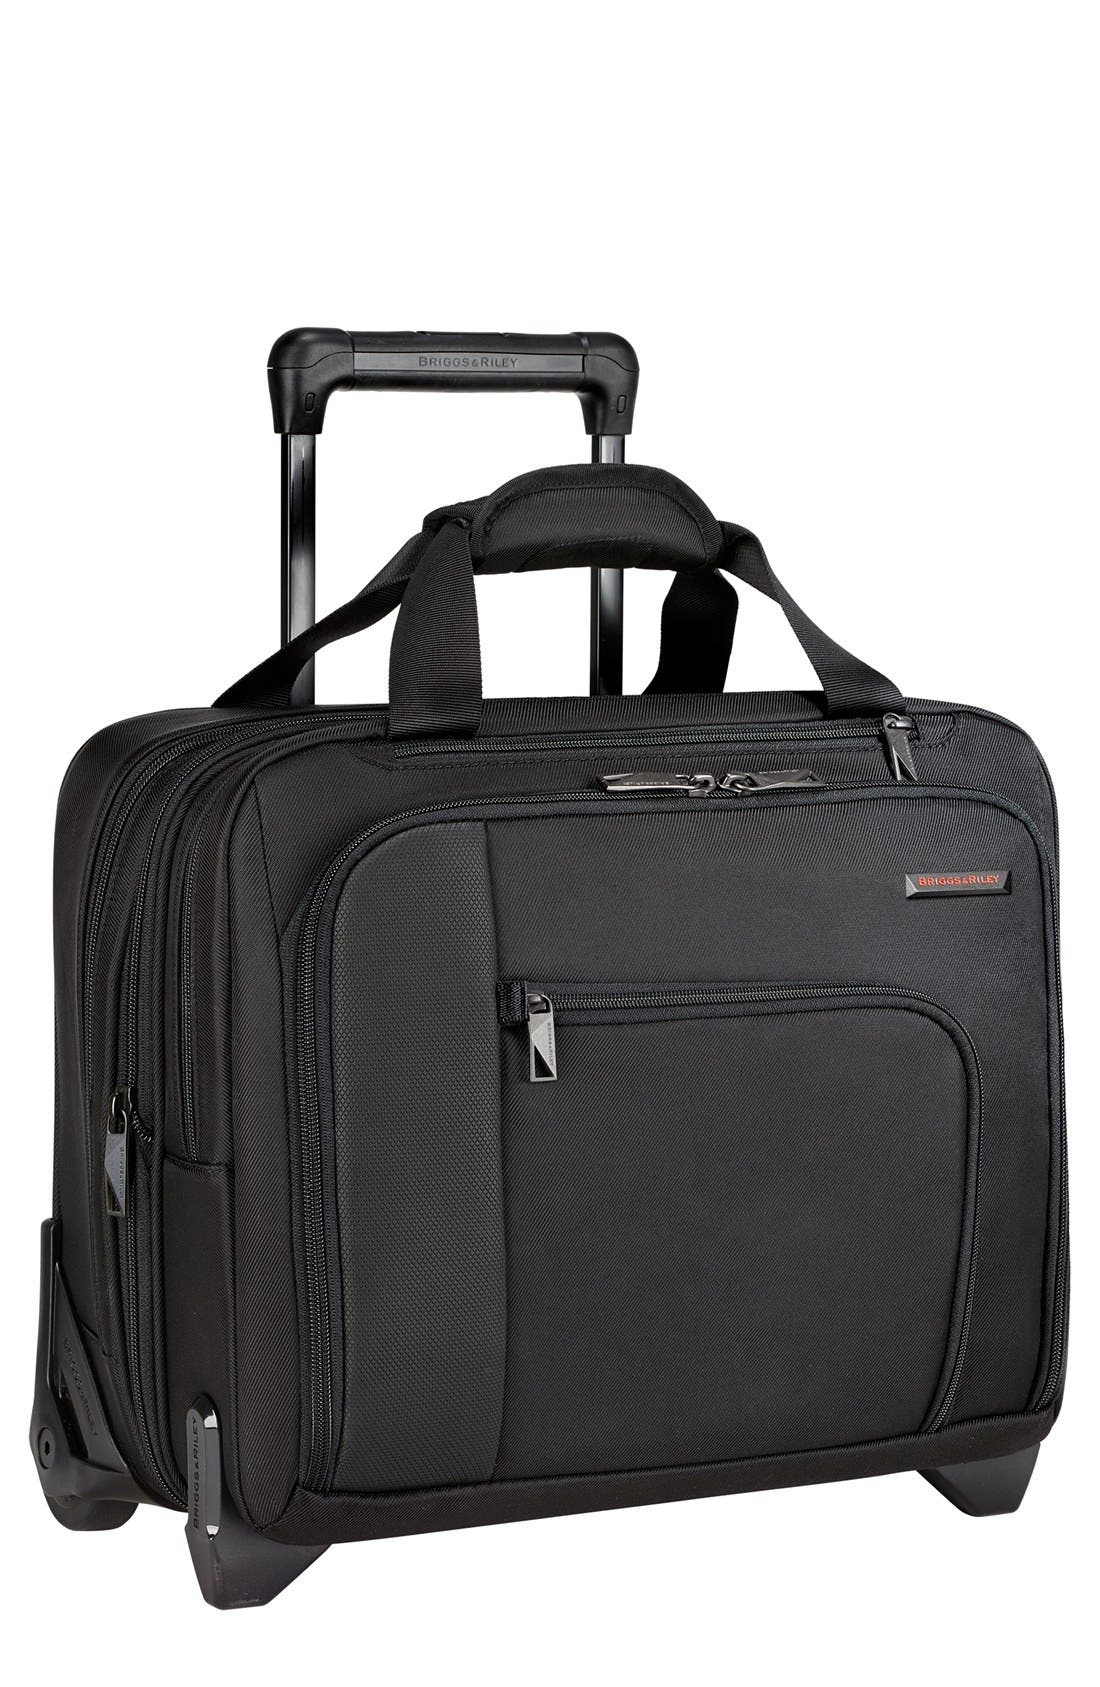 Verb - Propel Rolling Briefcase,                             Main thumbnail 1, color,                             BLACK